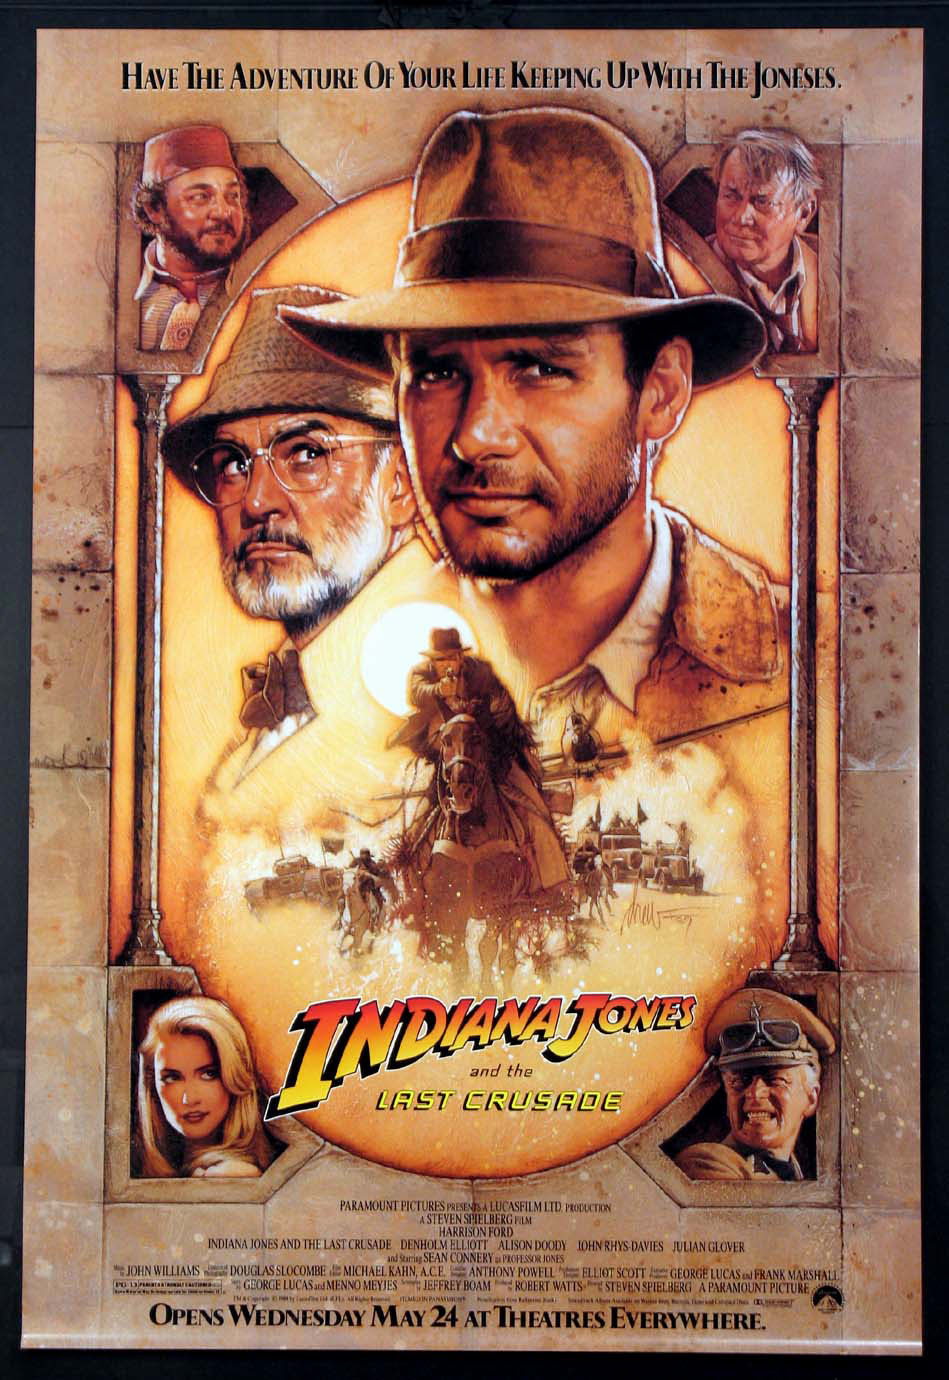 INDIANA JONES AND THE LAST CRUSADE @ FilmPosters.com